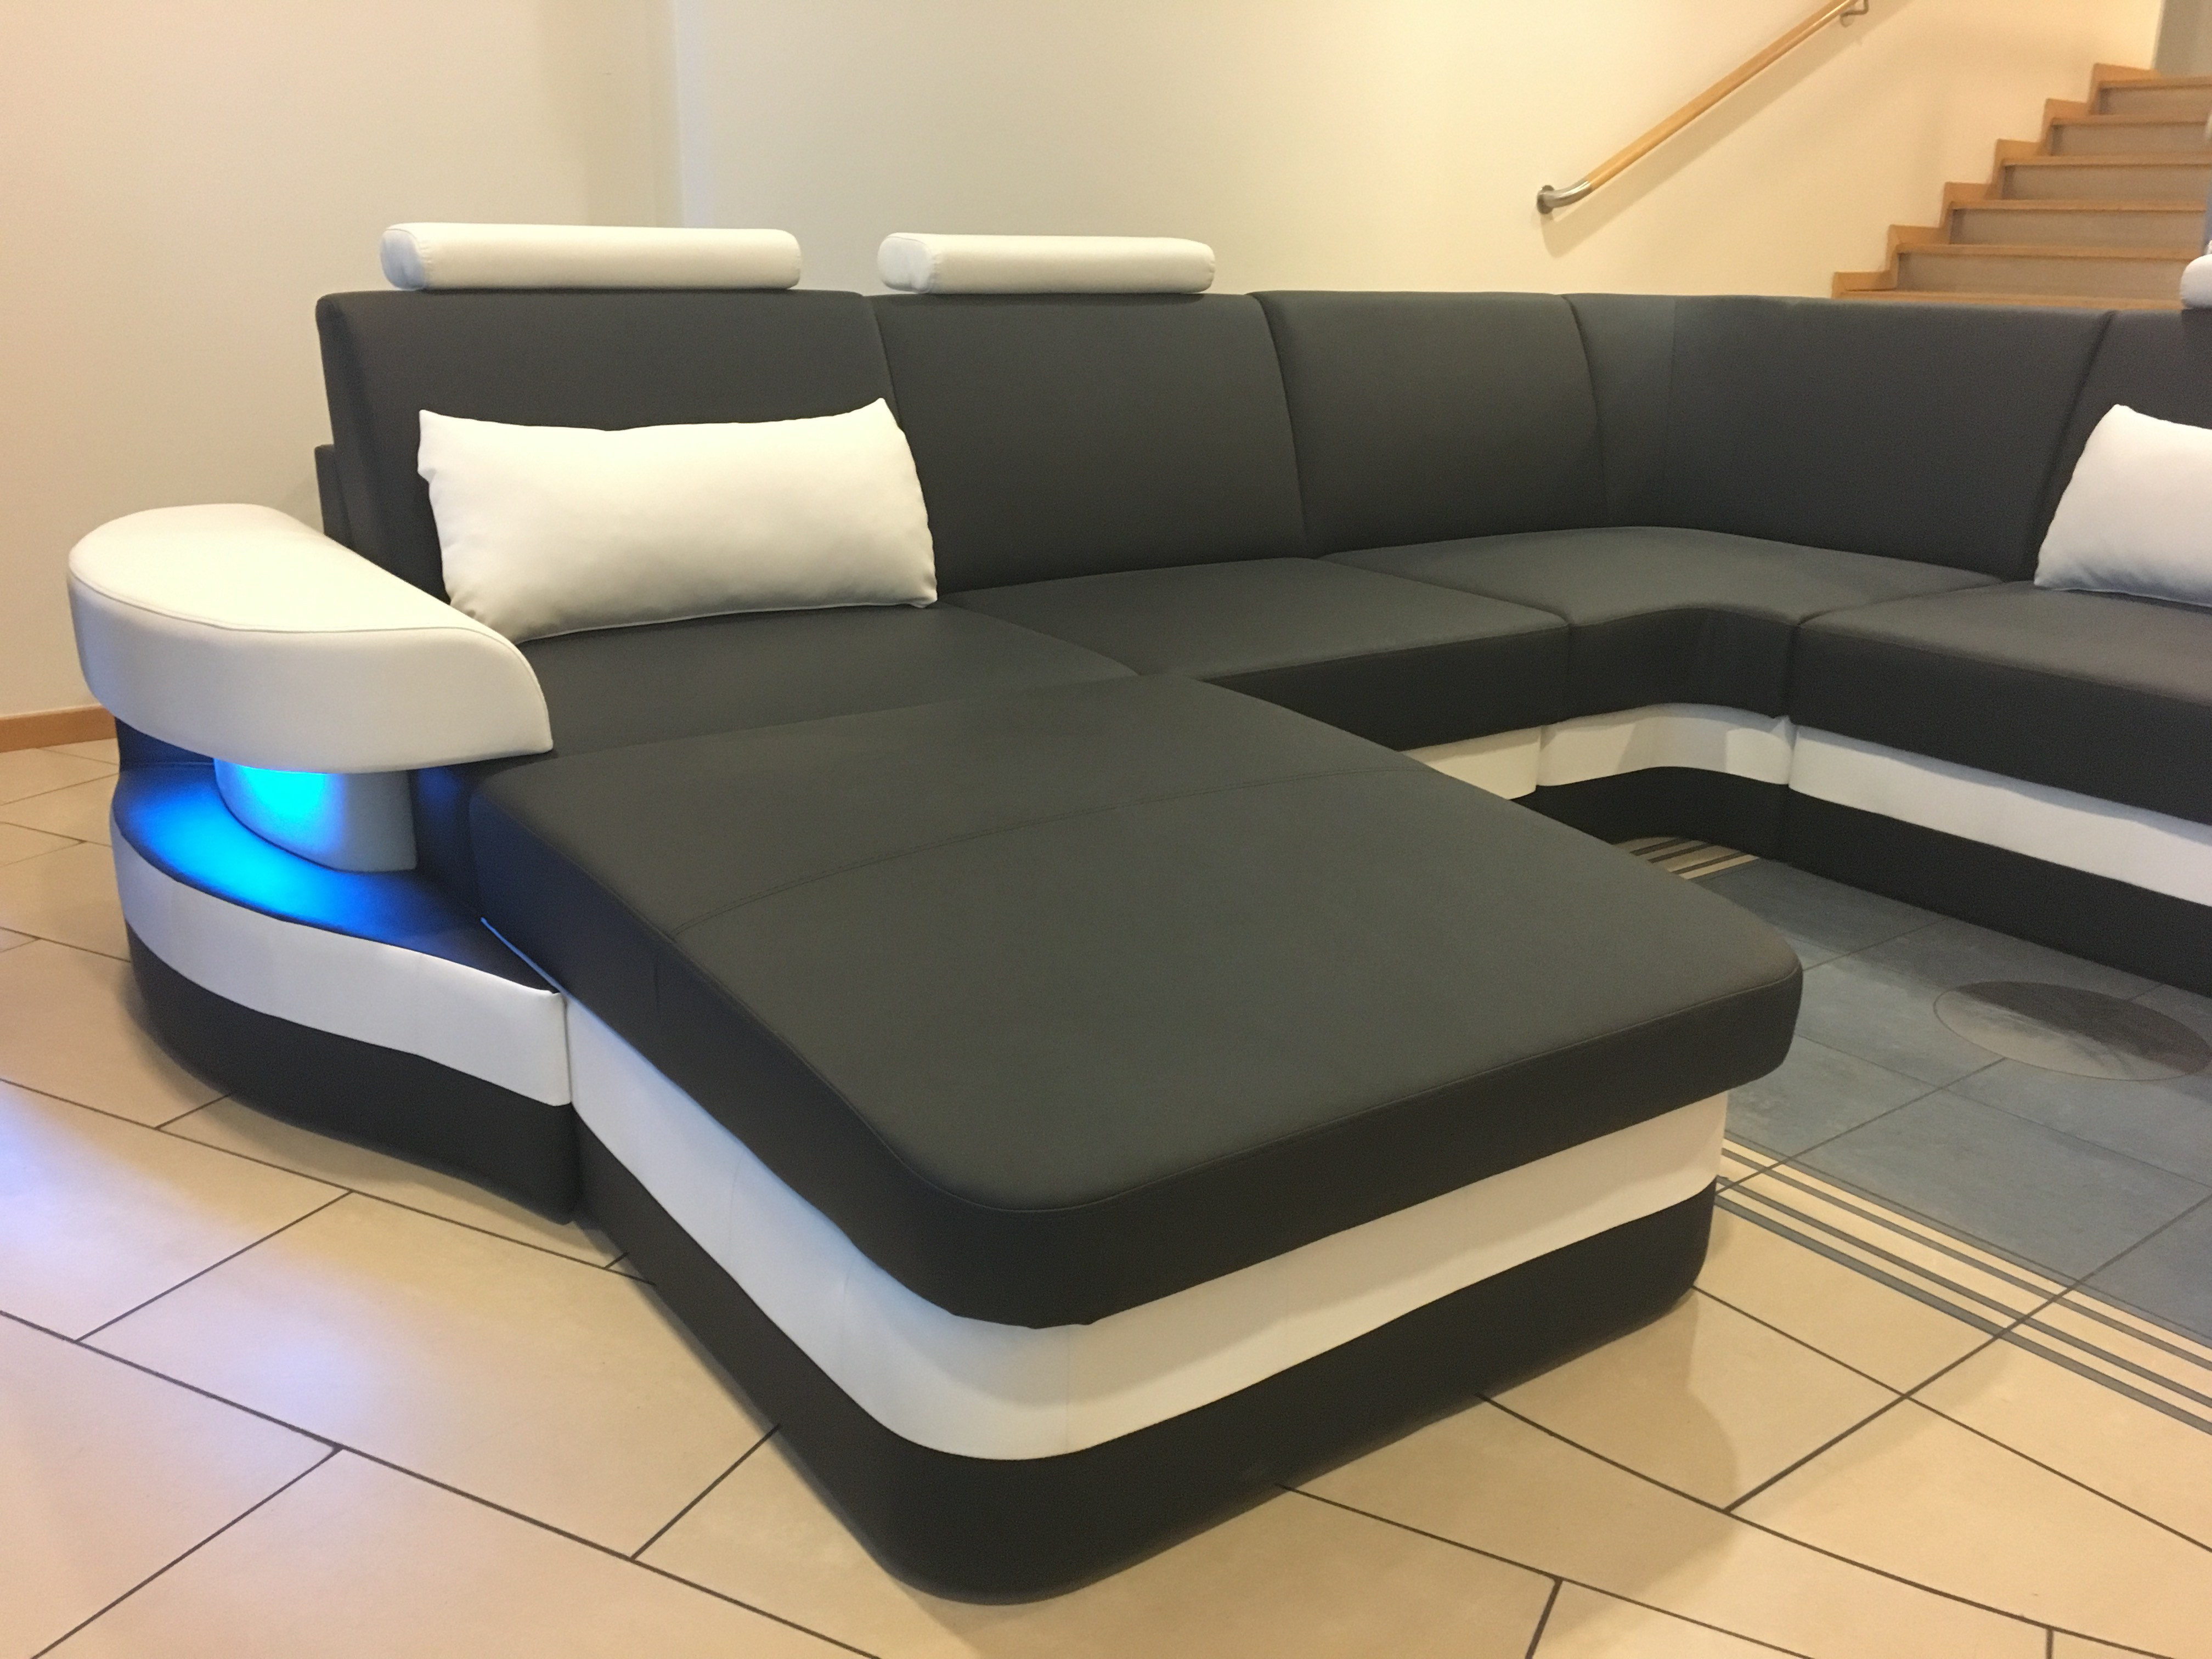 leder wohnlandschaft ledersofa eckcouch modena u form design couch optional led ebay. Black Bedroom Furniture Sets. Home Design Ideas